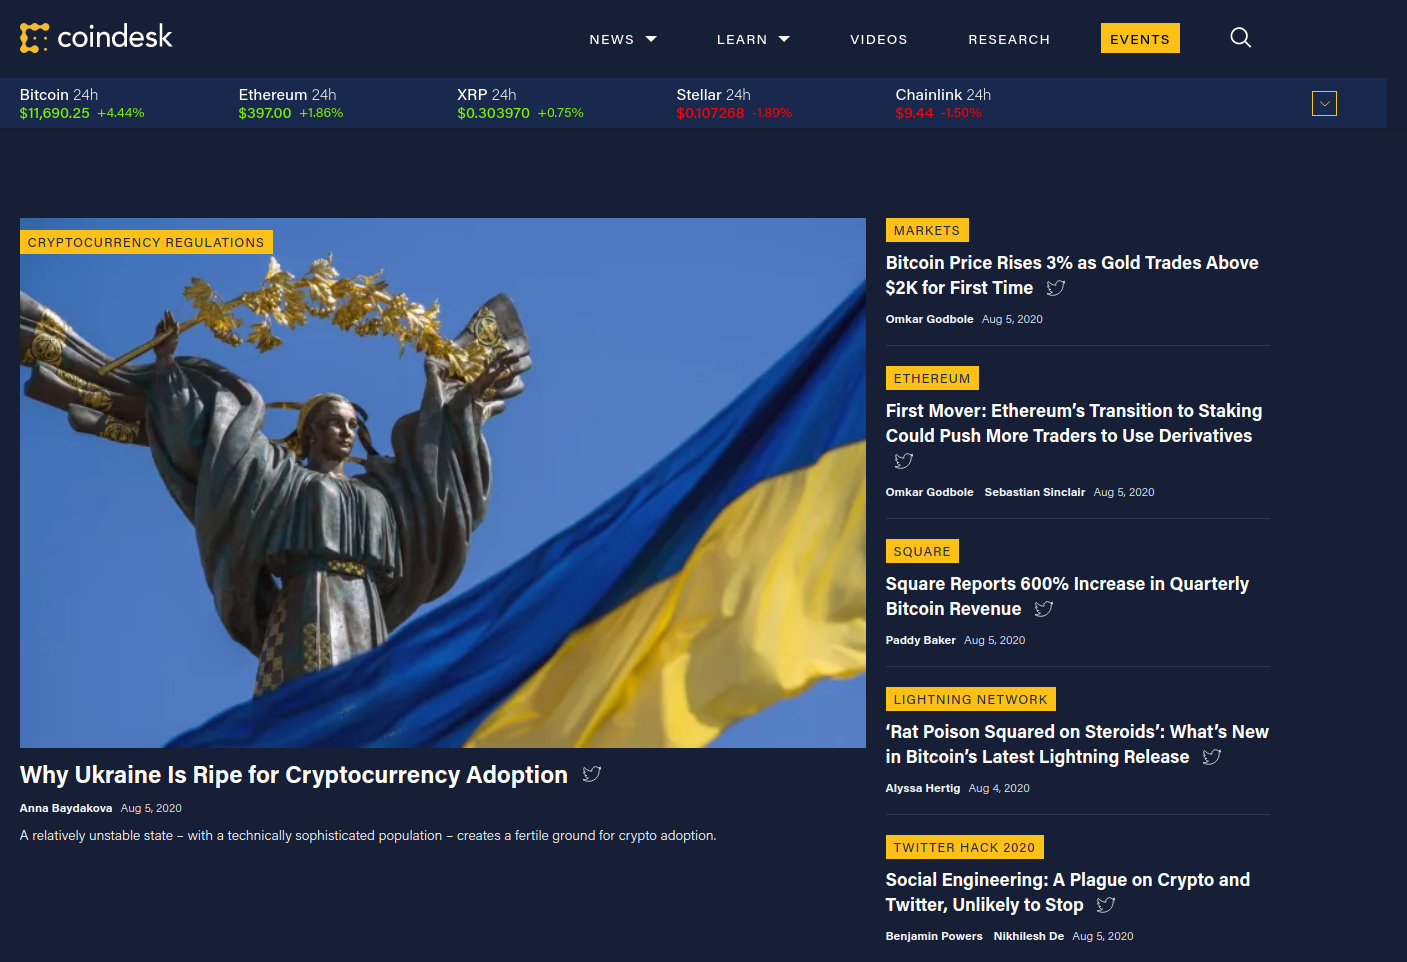 The front page of CoinDesk in August 2020.